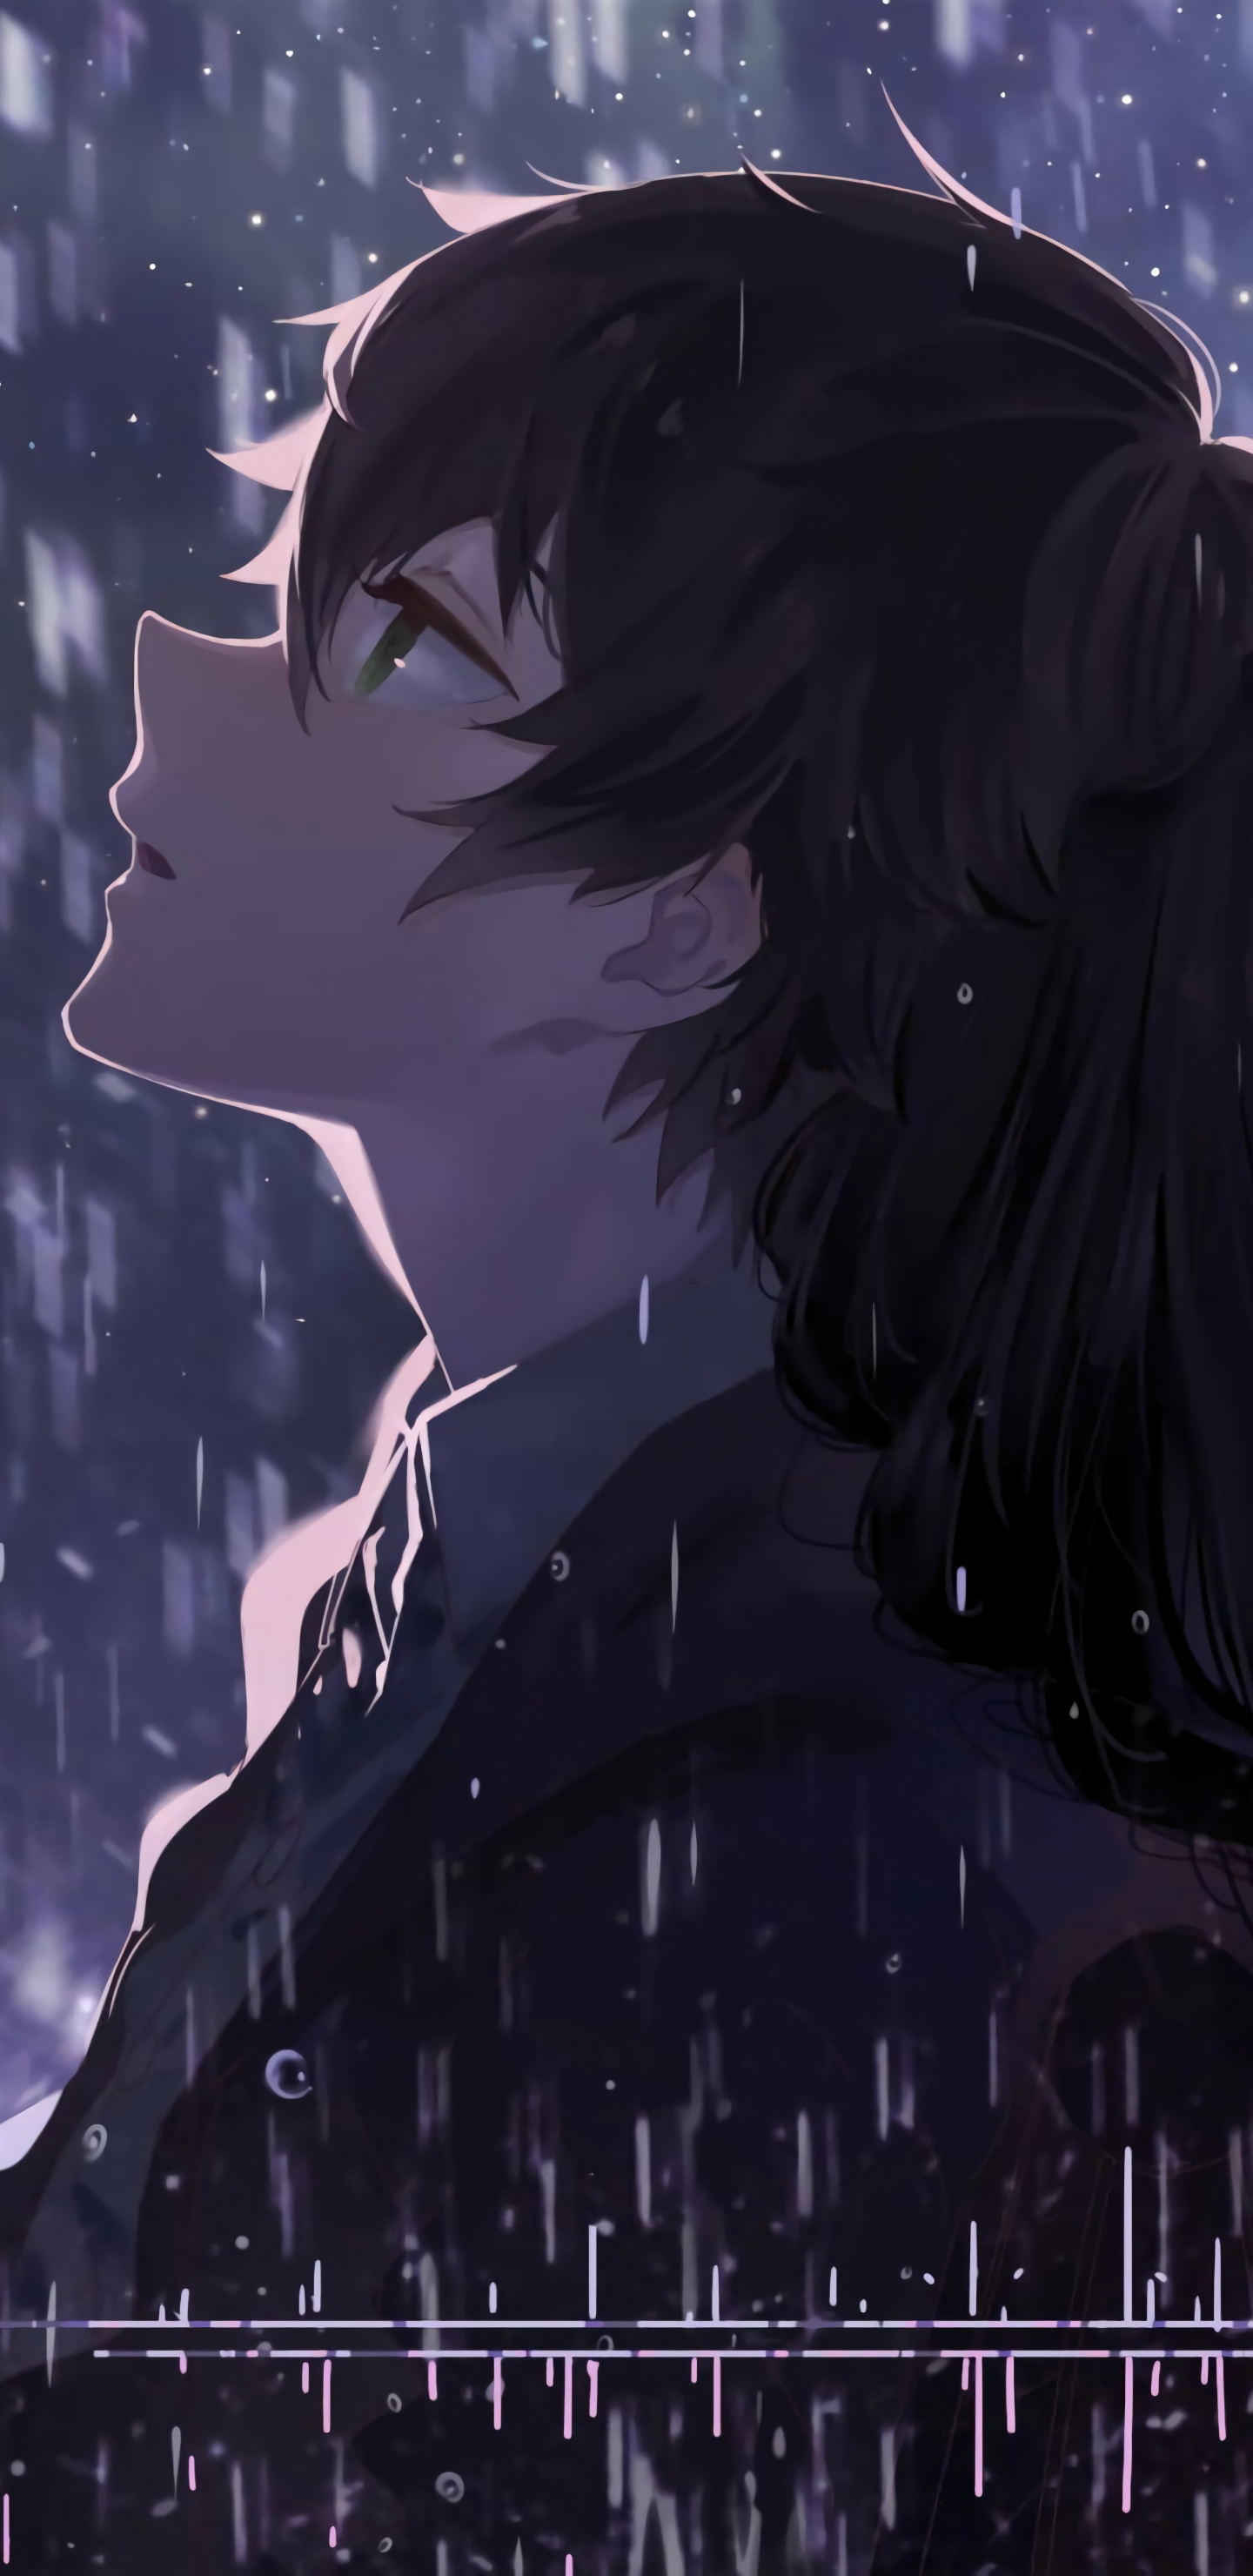 Anime Hyouka 1440x2960 Wallpaper Id 789336 Mobile Abyss